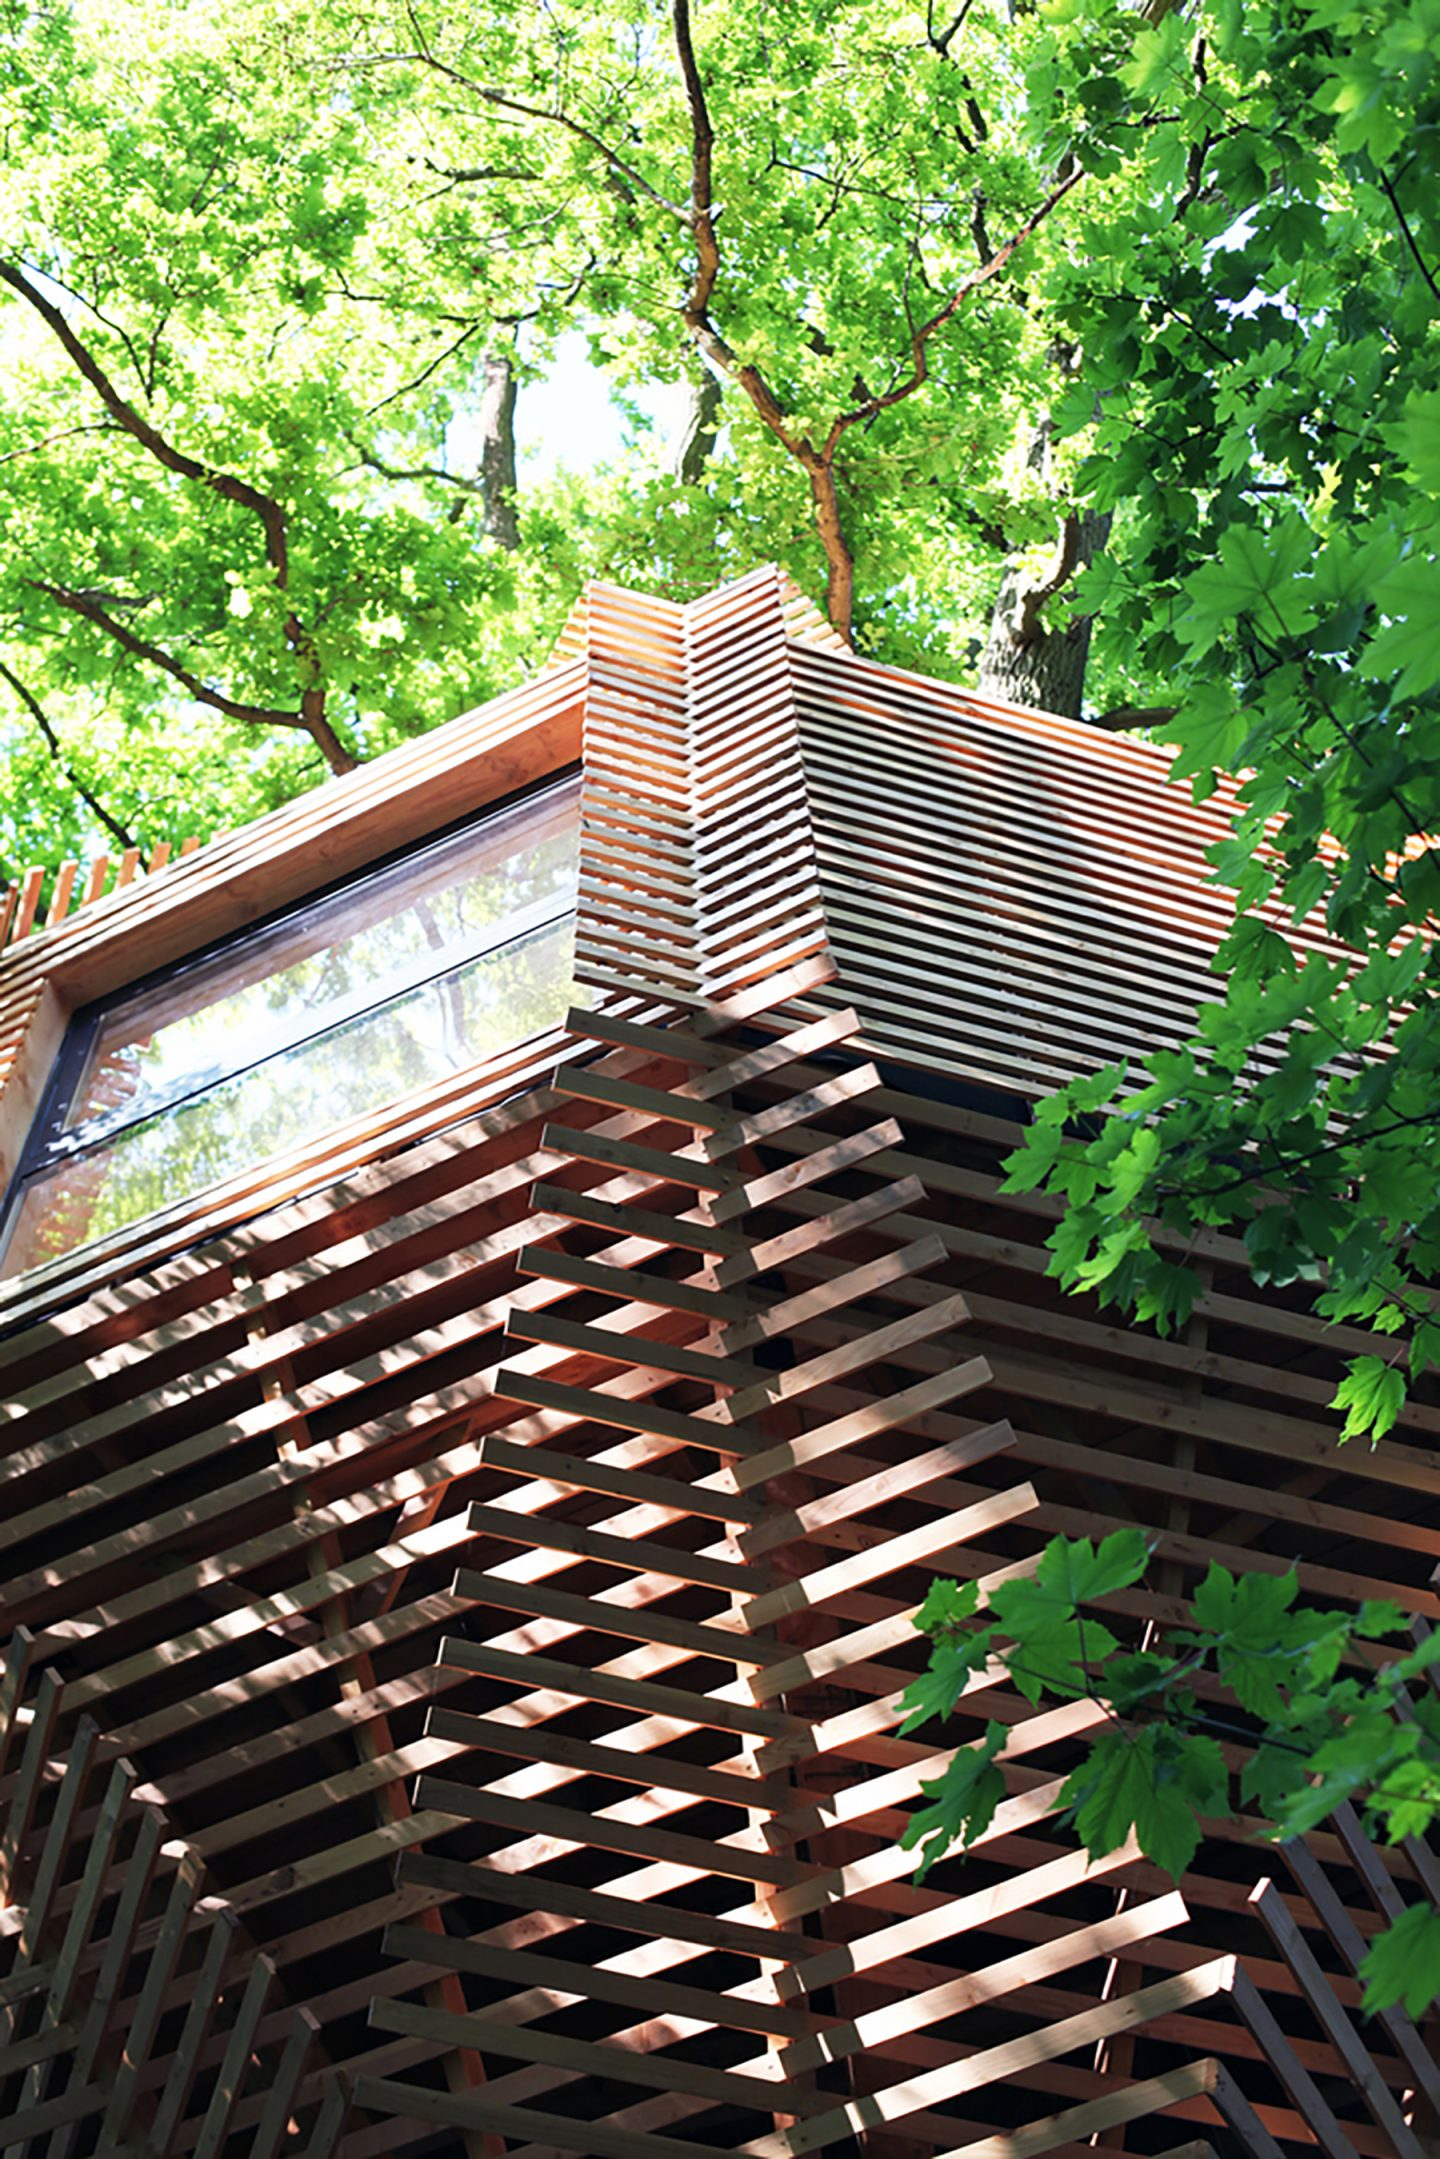 iGNANT-Architecture-Atelier-Lavit-Origin-Tree-House-019